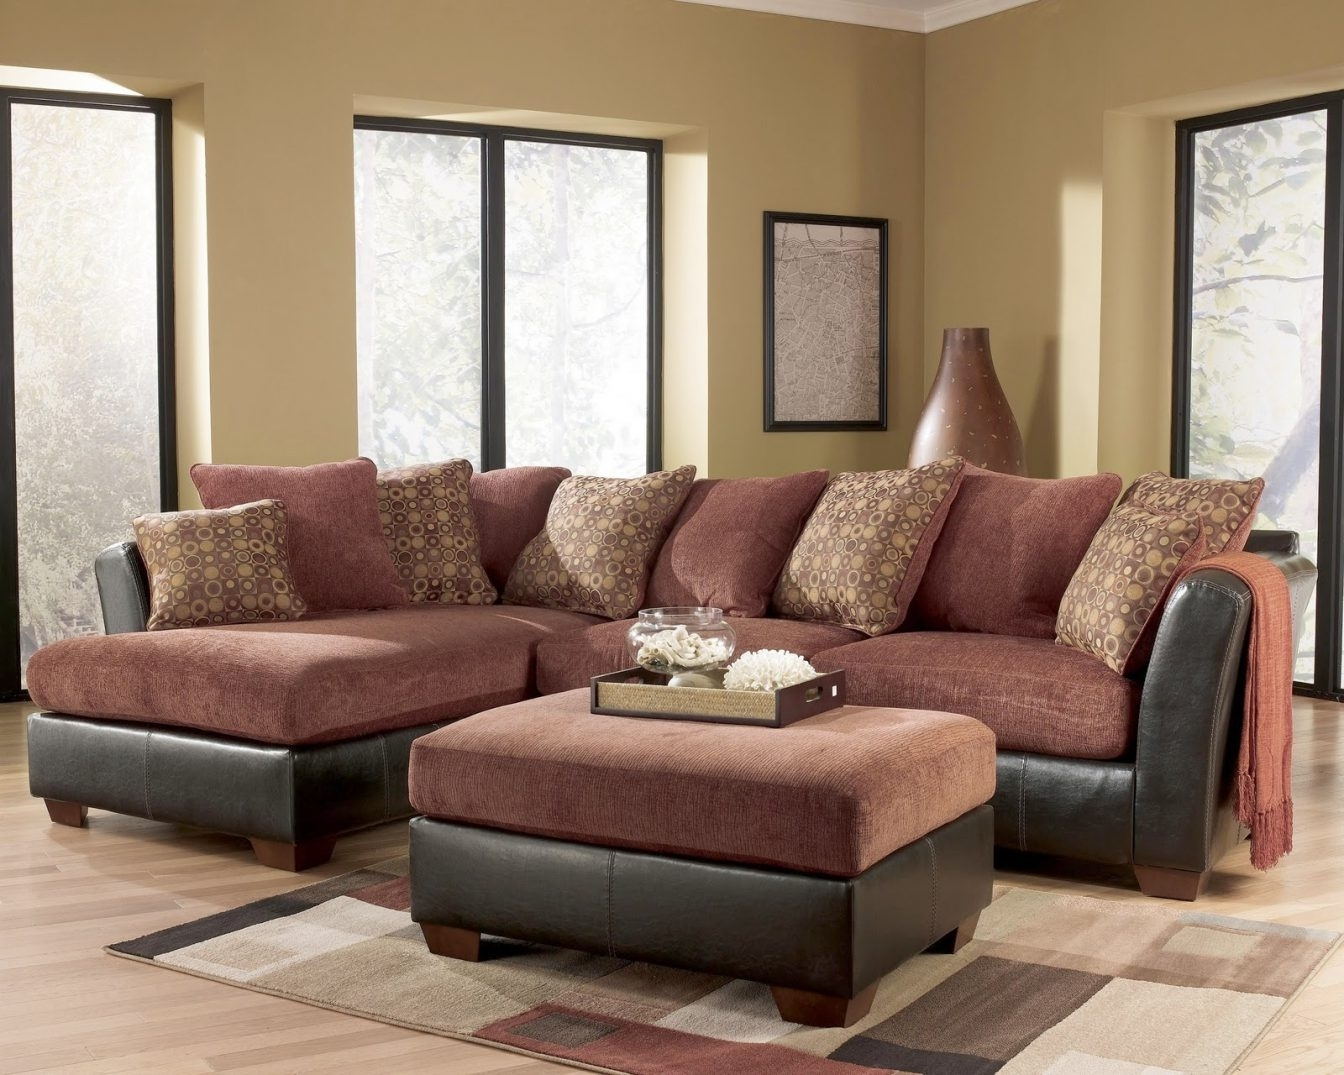 Ashley Furniture Sectional Sofa #2 Ashley Furniture – Larson 31400 With Regard To Most Current Royal Furniture Sectional Sofas (View 2 of 15)